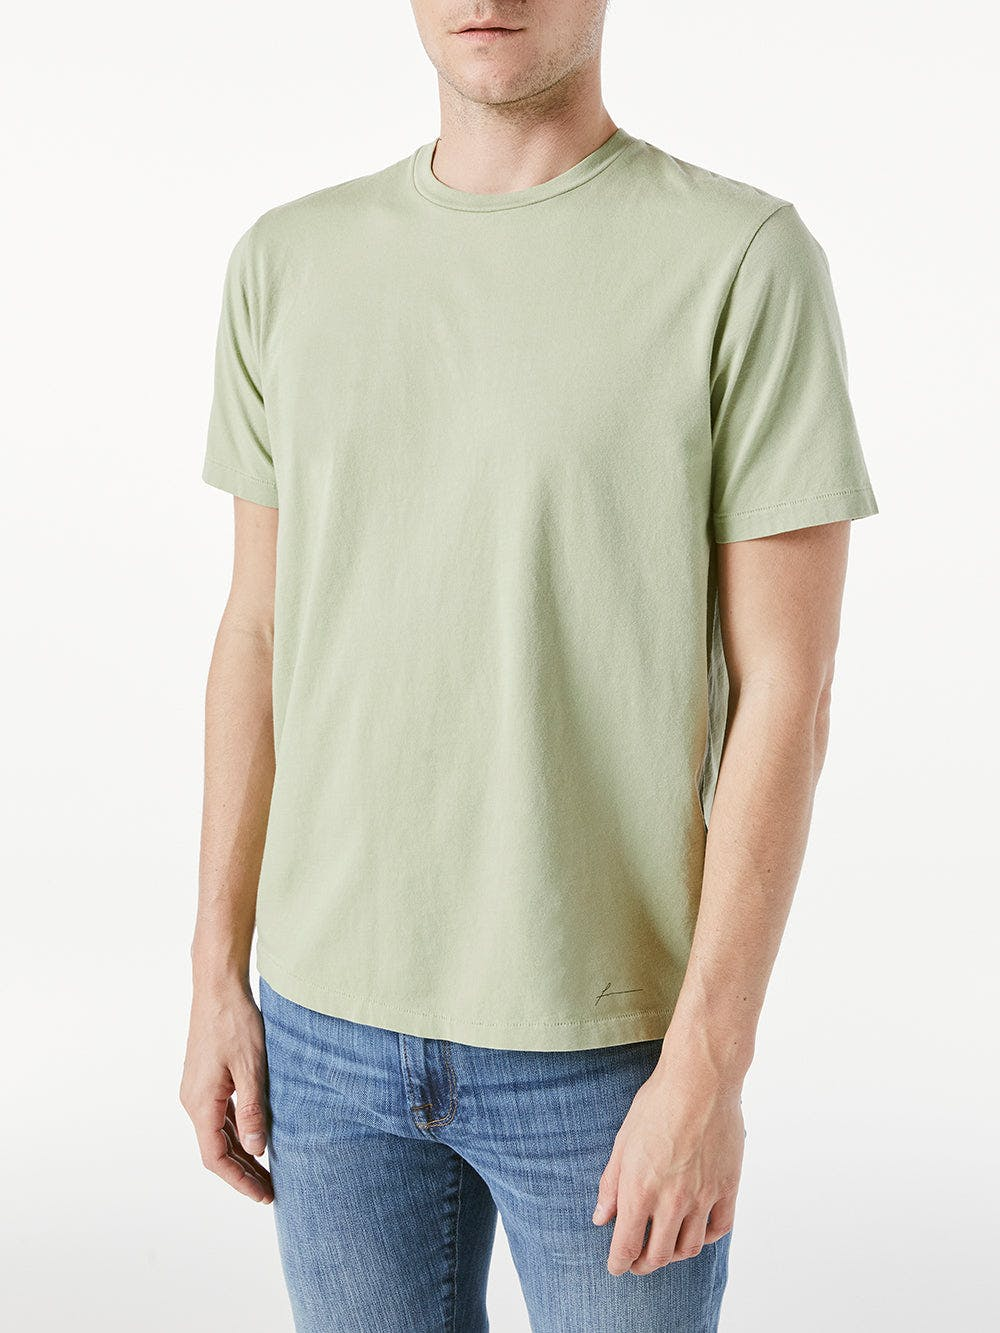 tee front view